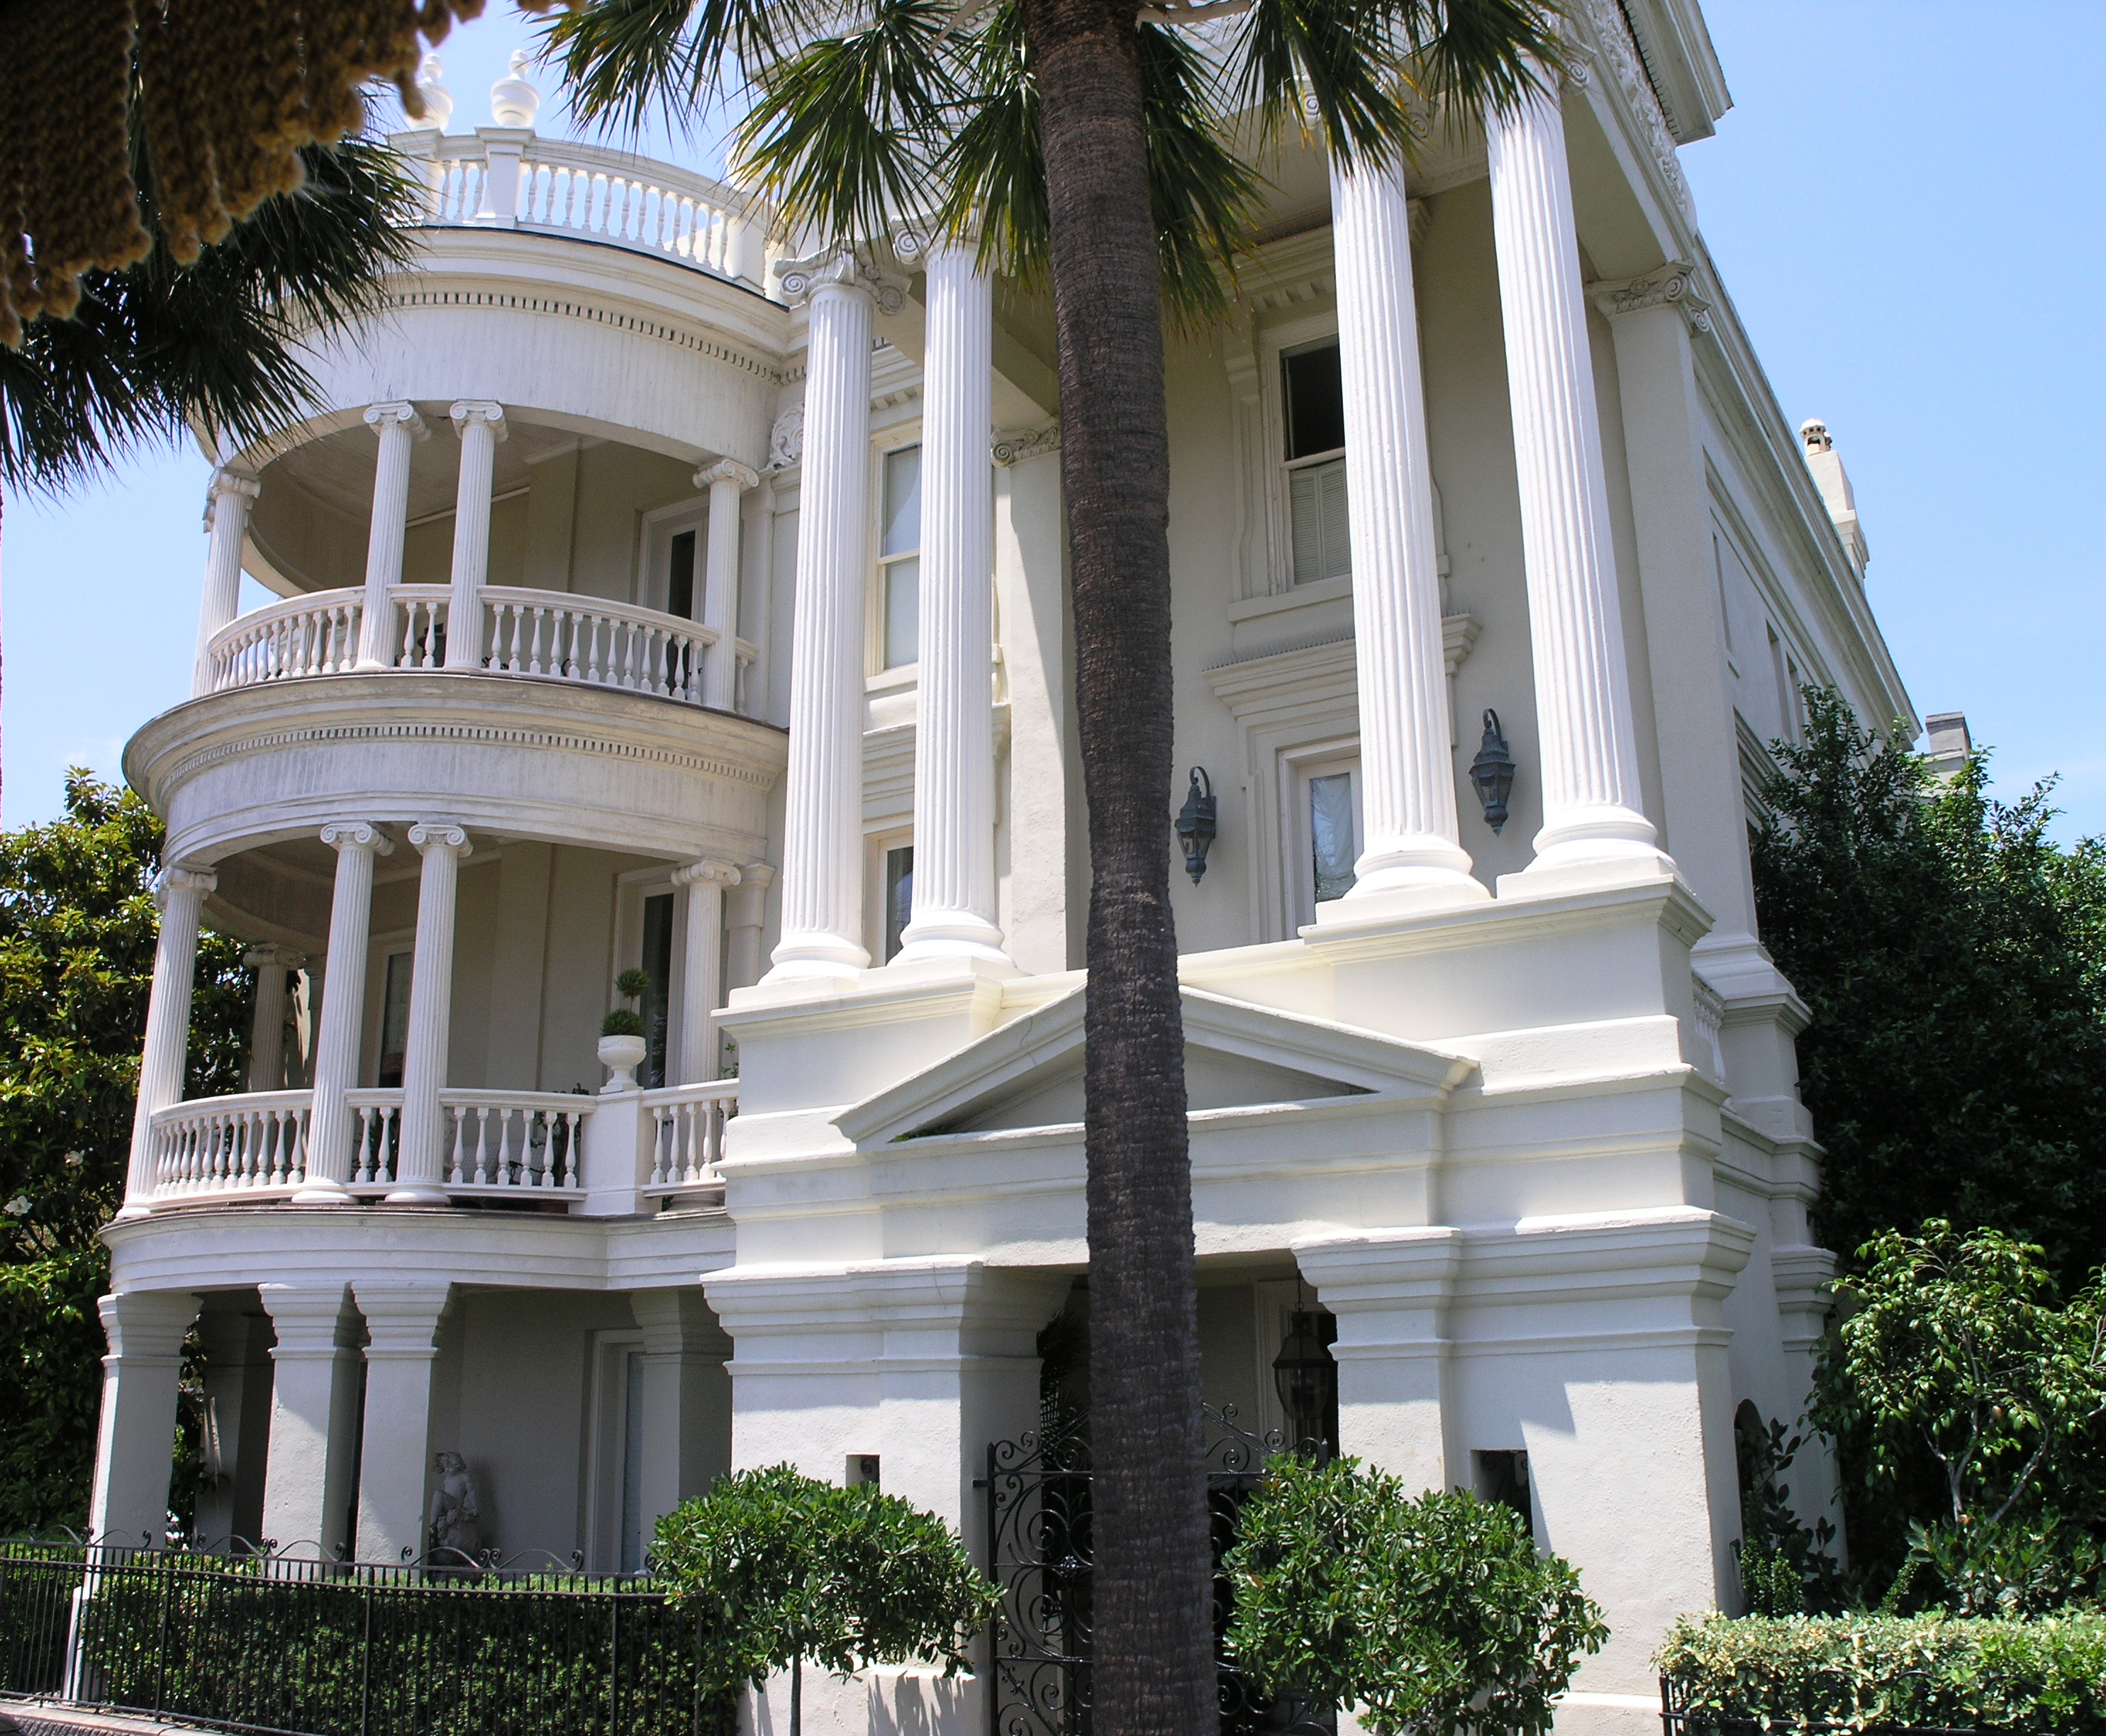 Southern Charm S Thomas Ravenel Dumped Latest Girlfriend S Moved Man Lives Two Doors Away further Sullivans Island Real Estate further Hawaiian Interiors further 12 Falcon Point Road likewise Recharging At Battery Charleston Sc. on charleston sc mansions